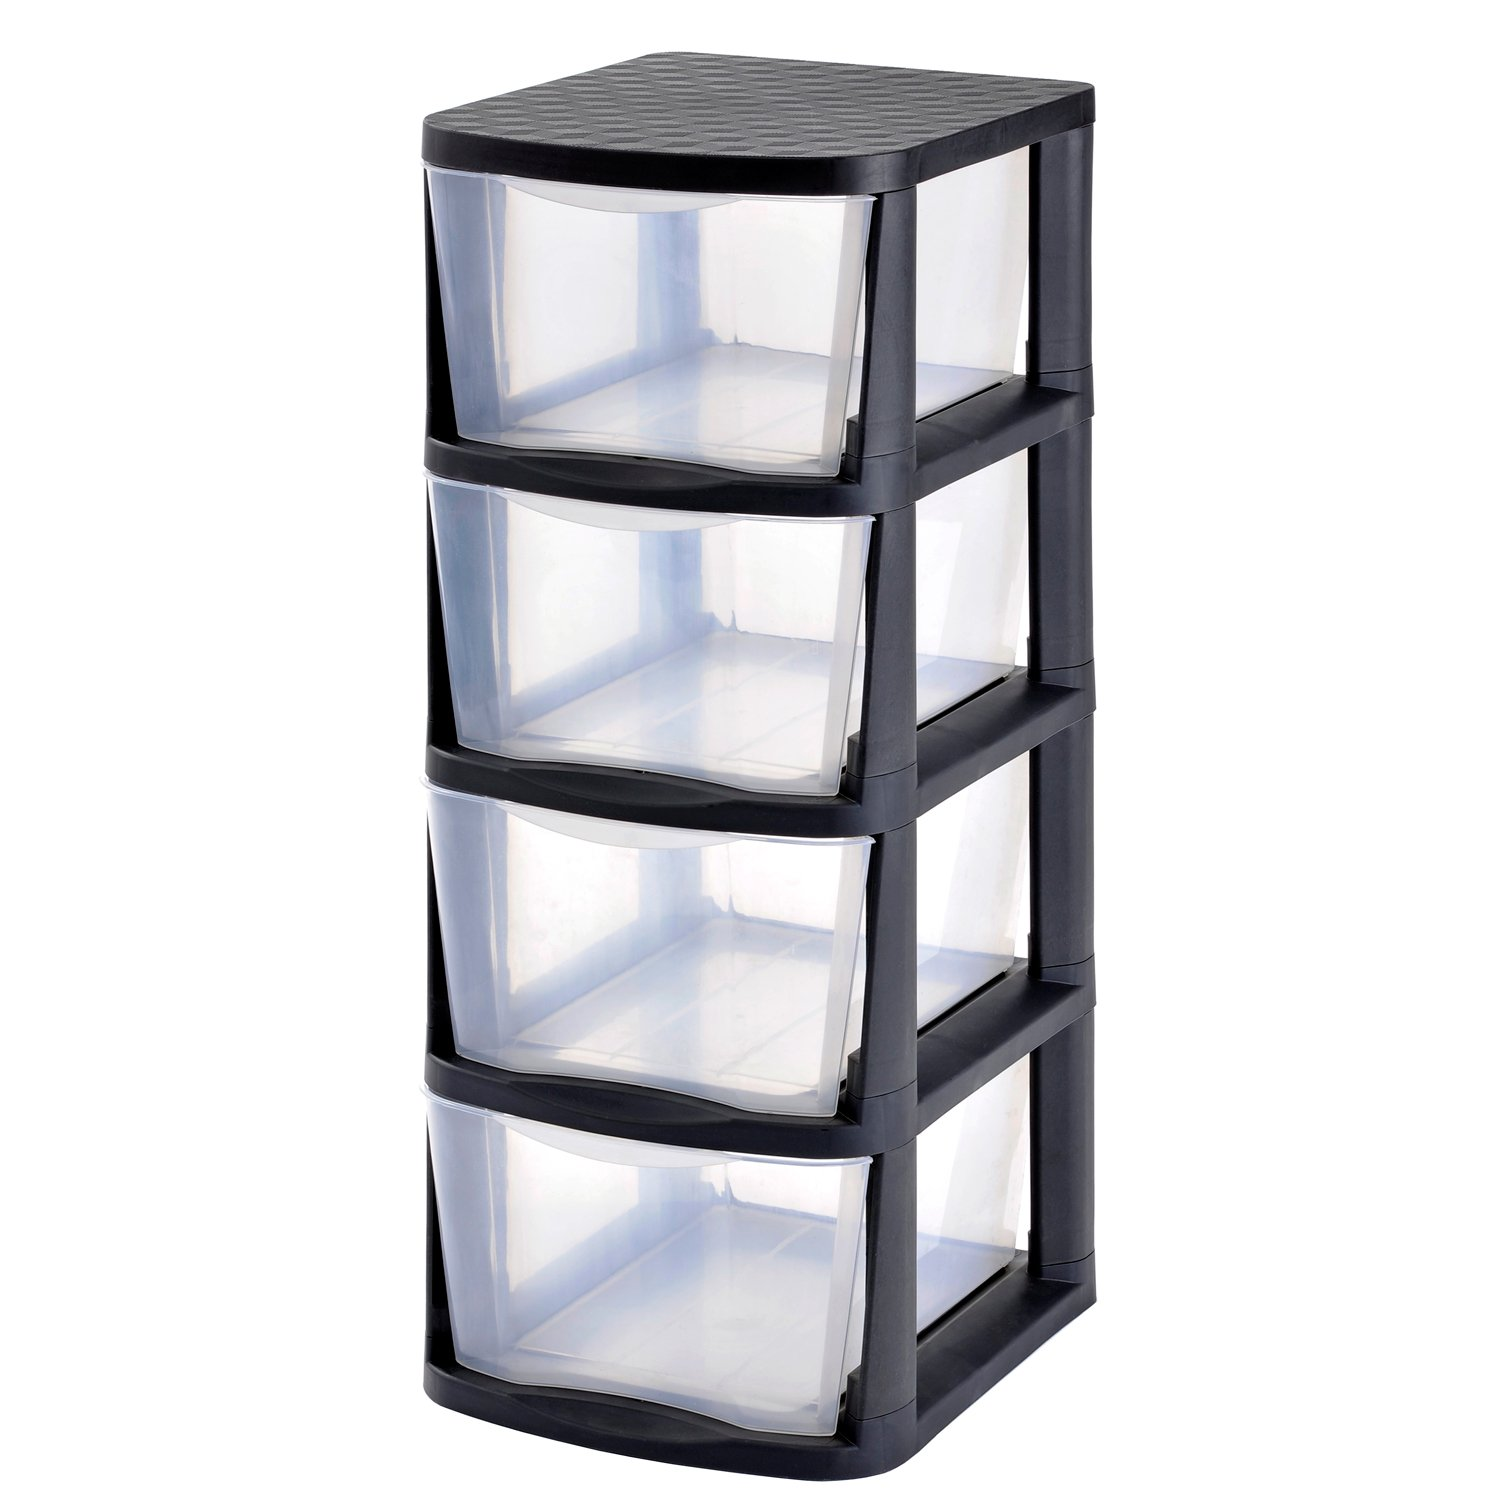 Muscle Rack PDT4-2PK 4 Drawer Clear Plastic Storage Tower with Black Frame (Pack of 2)